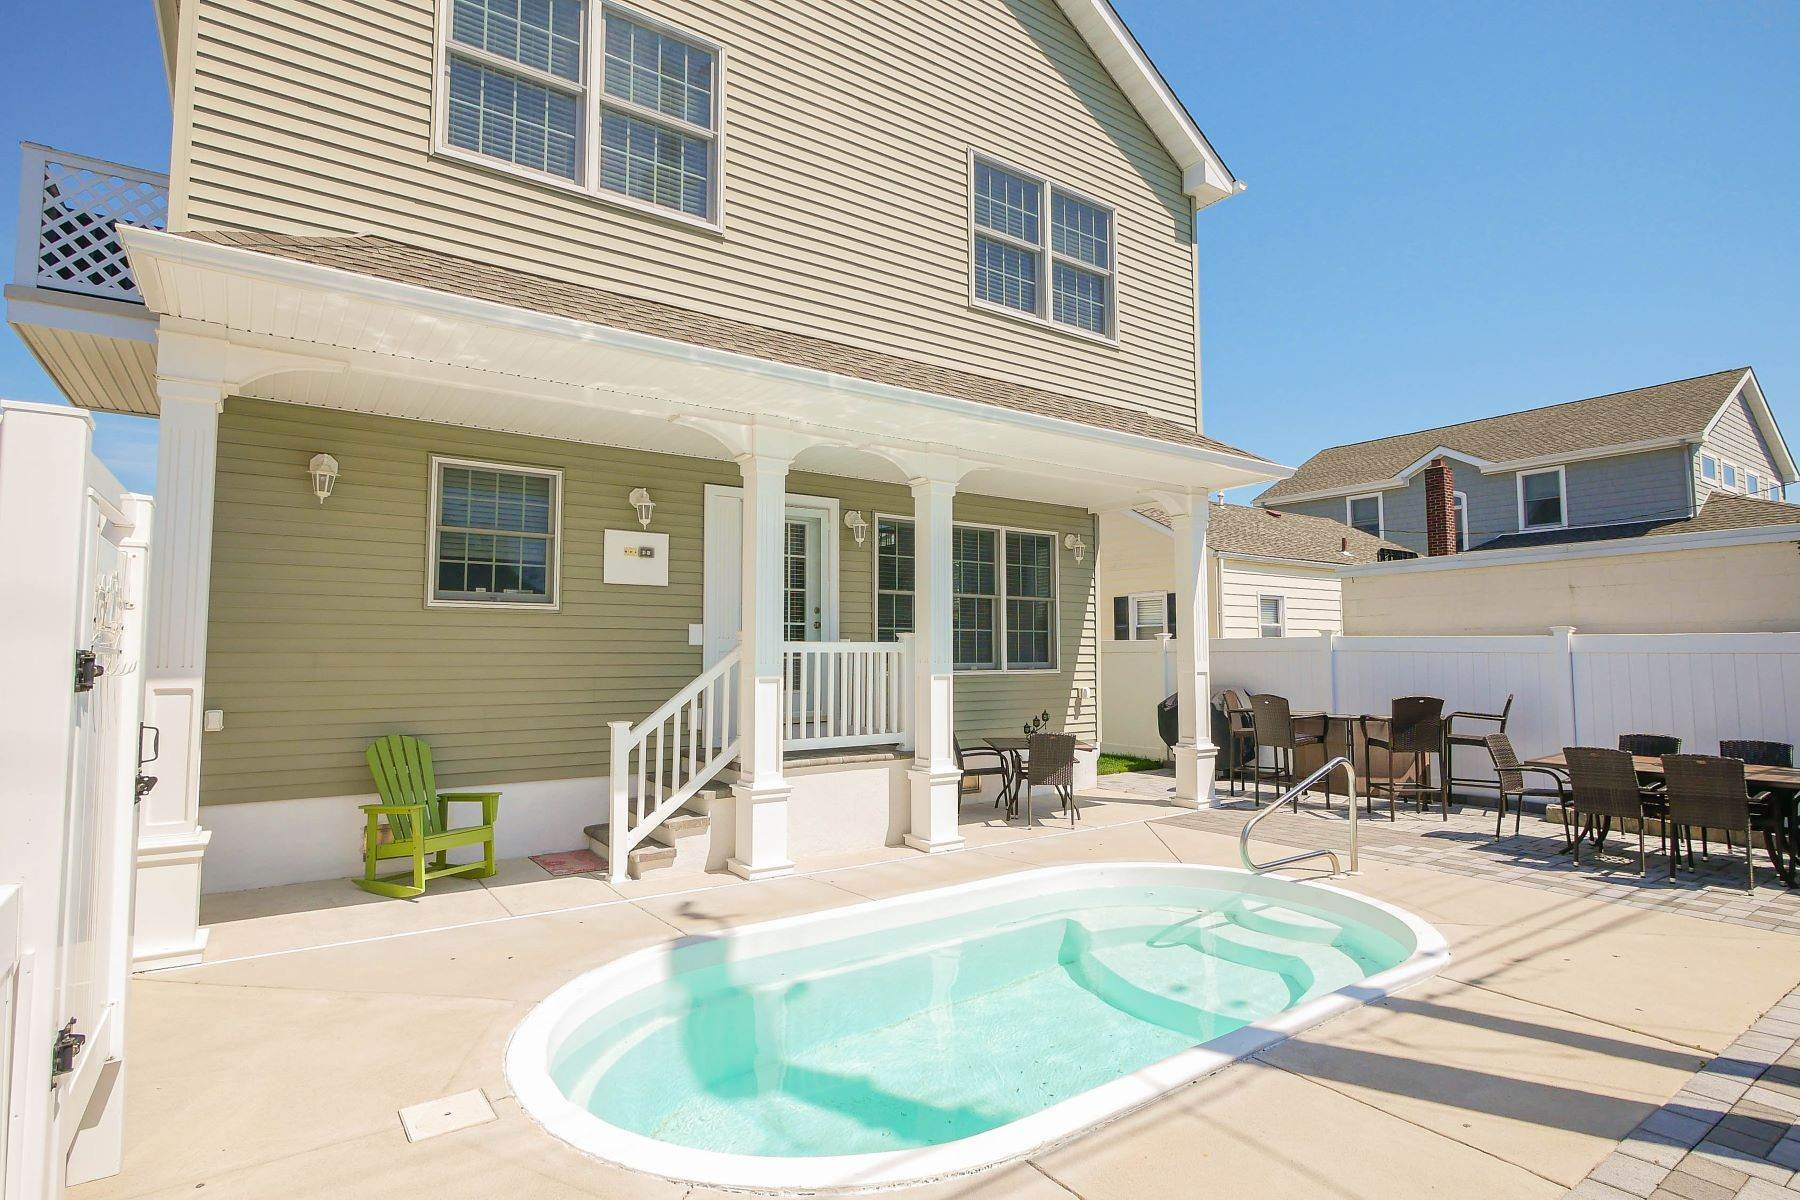 22. Single Family Homes for Sale at 210 N Pembroke Ave Margate, New Jersey 08402 United States